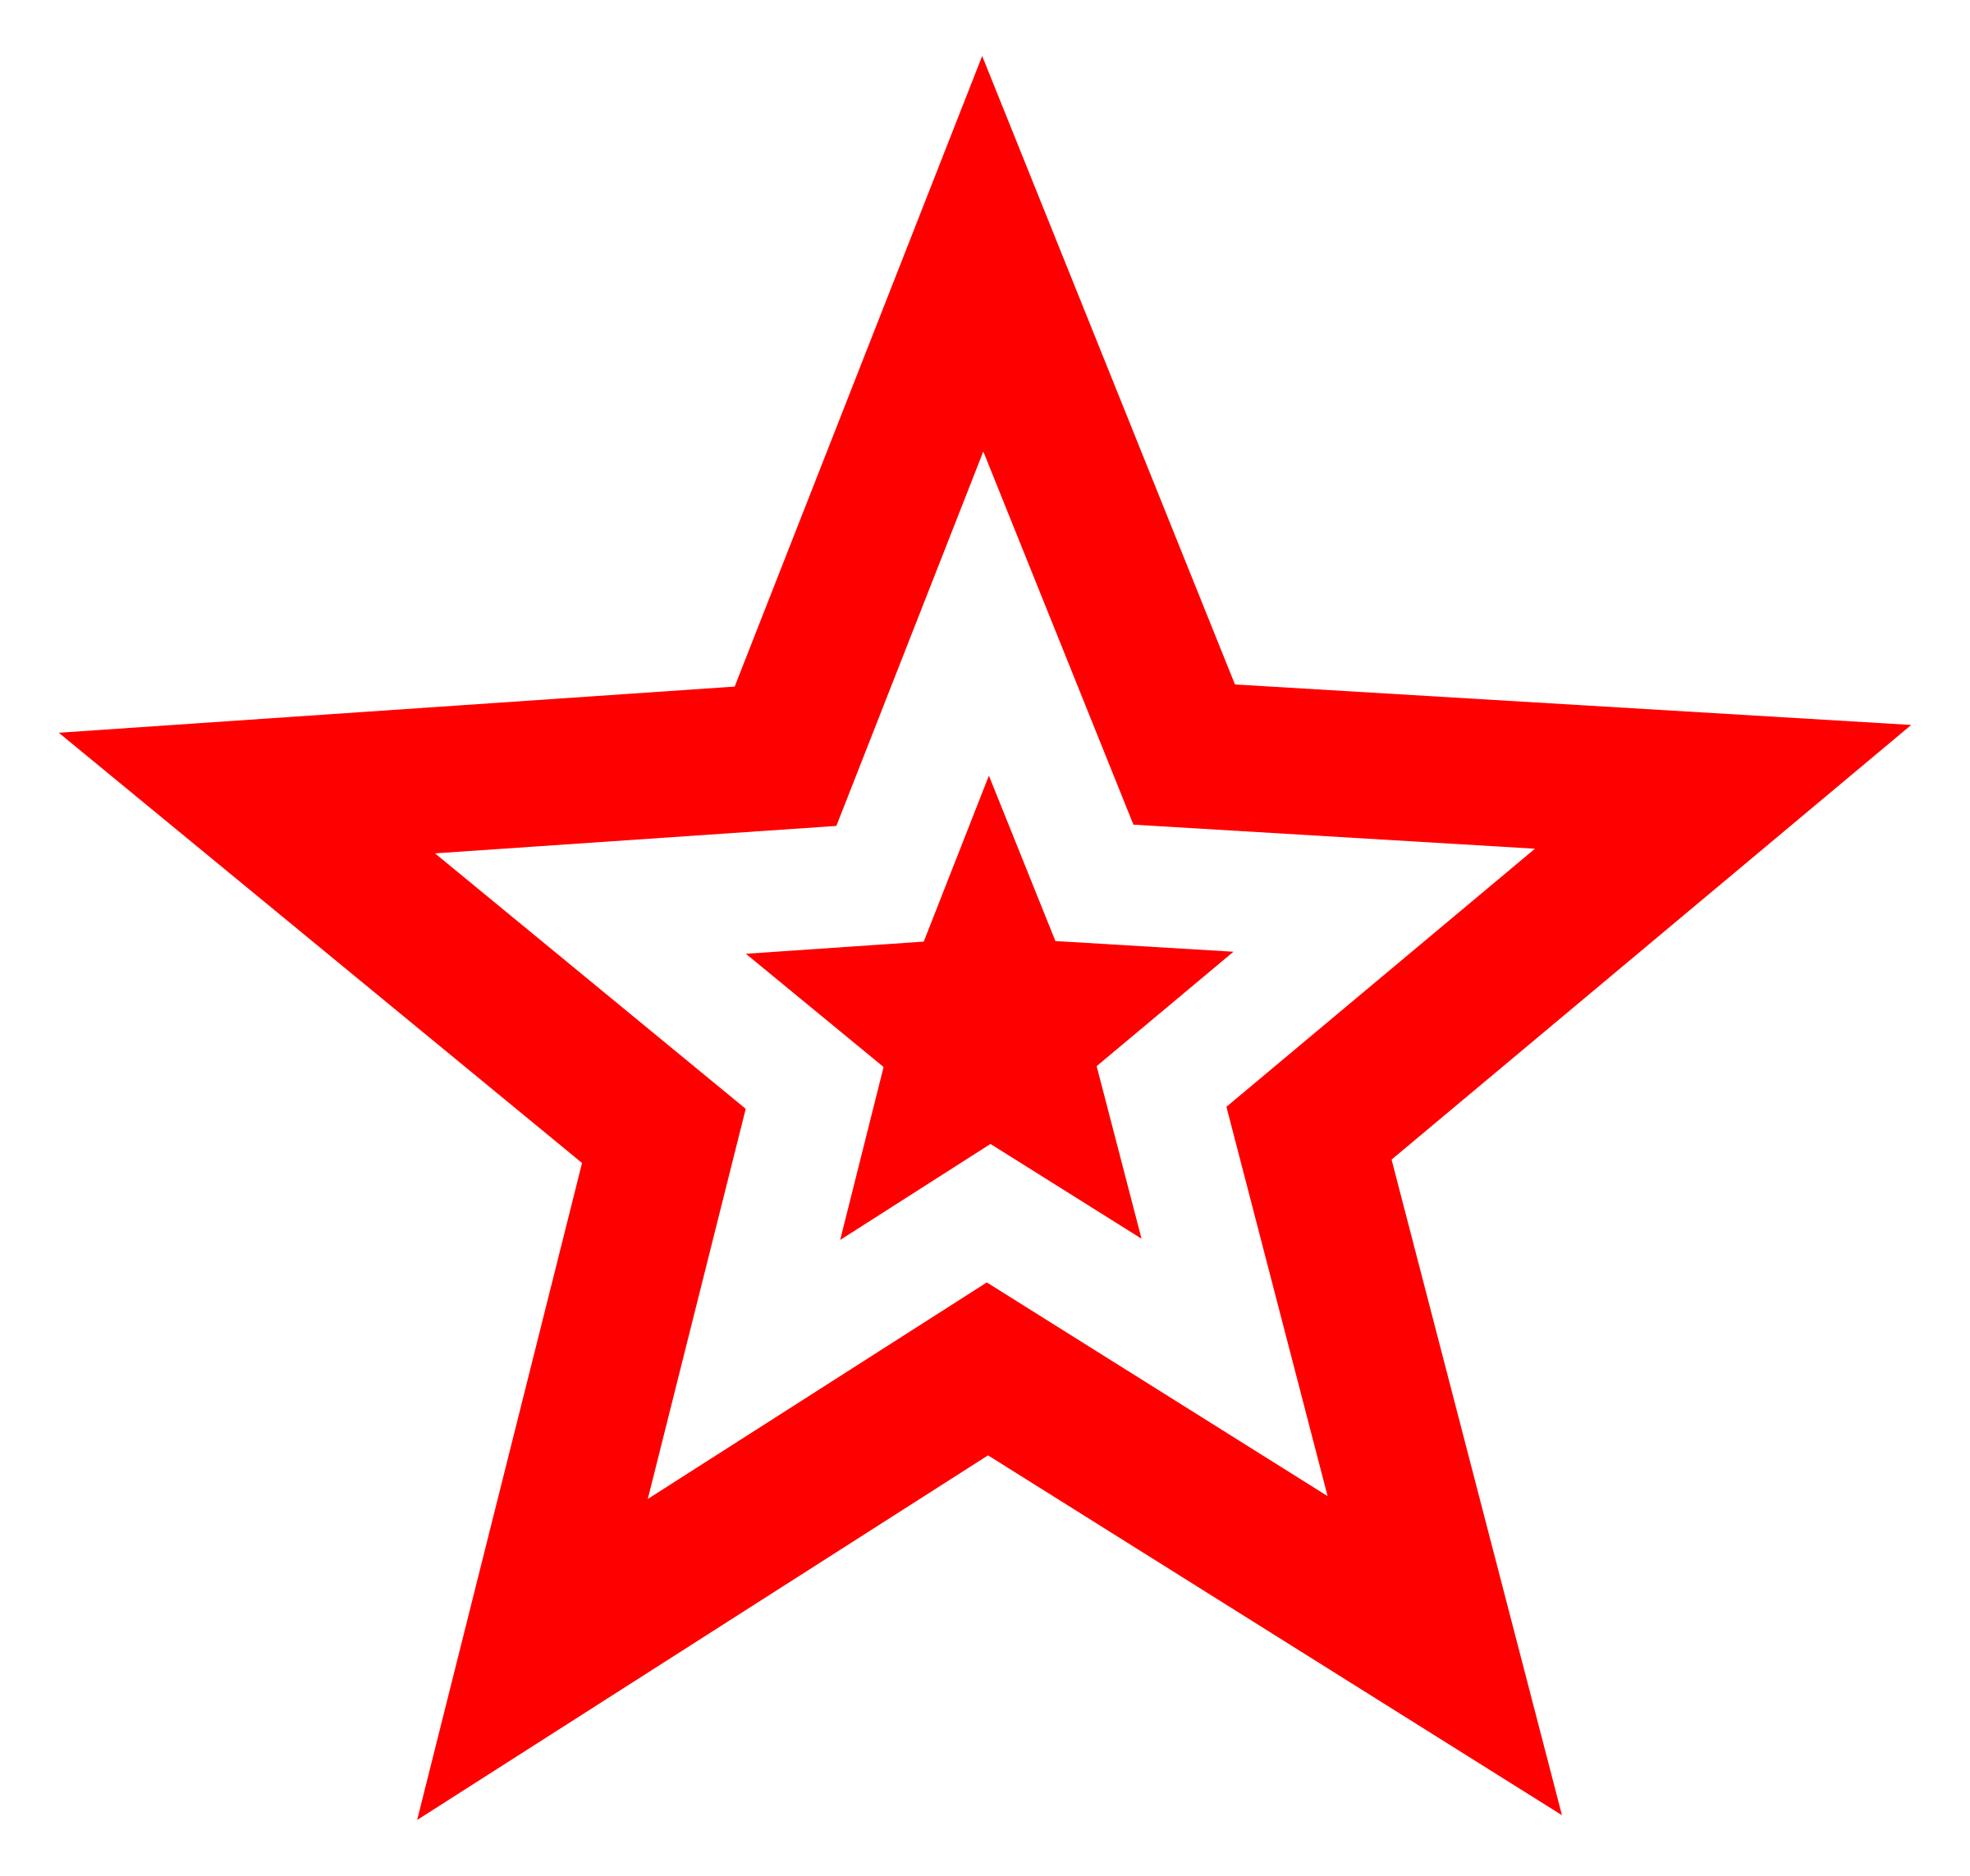 clipart red star in star rh openclipart org red star images clipart red shooting star clip art